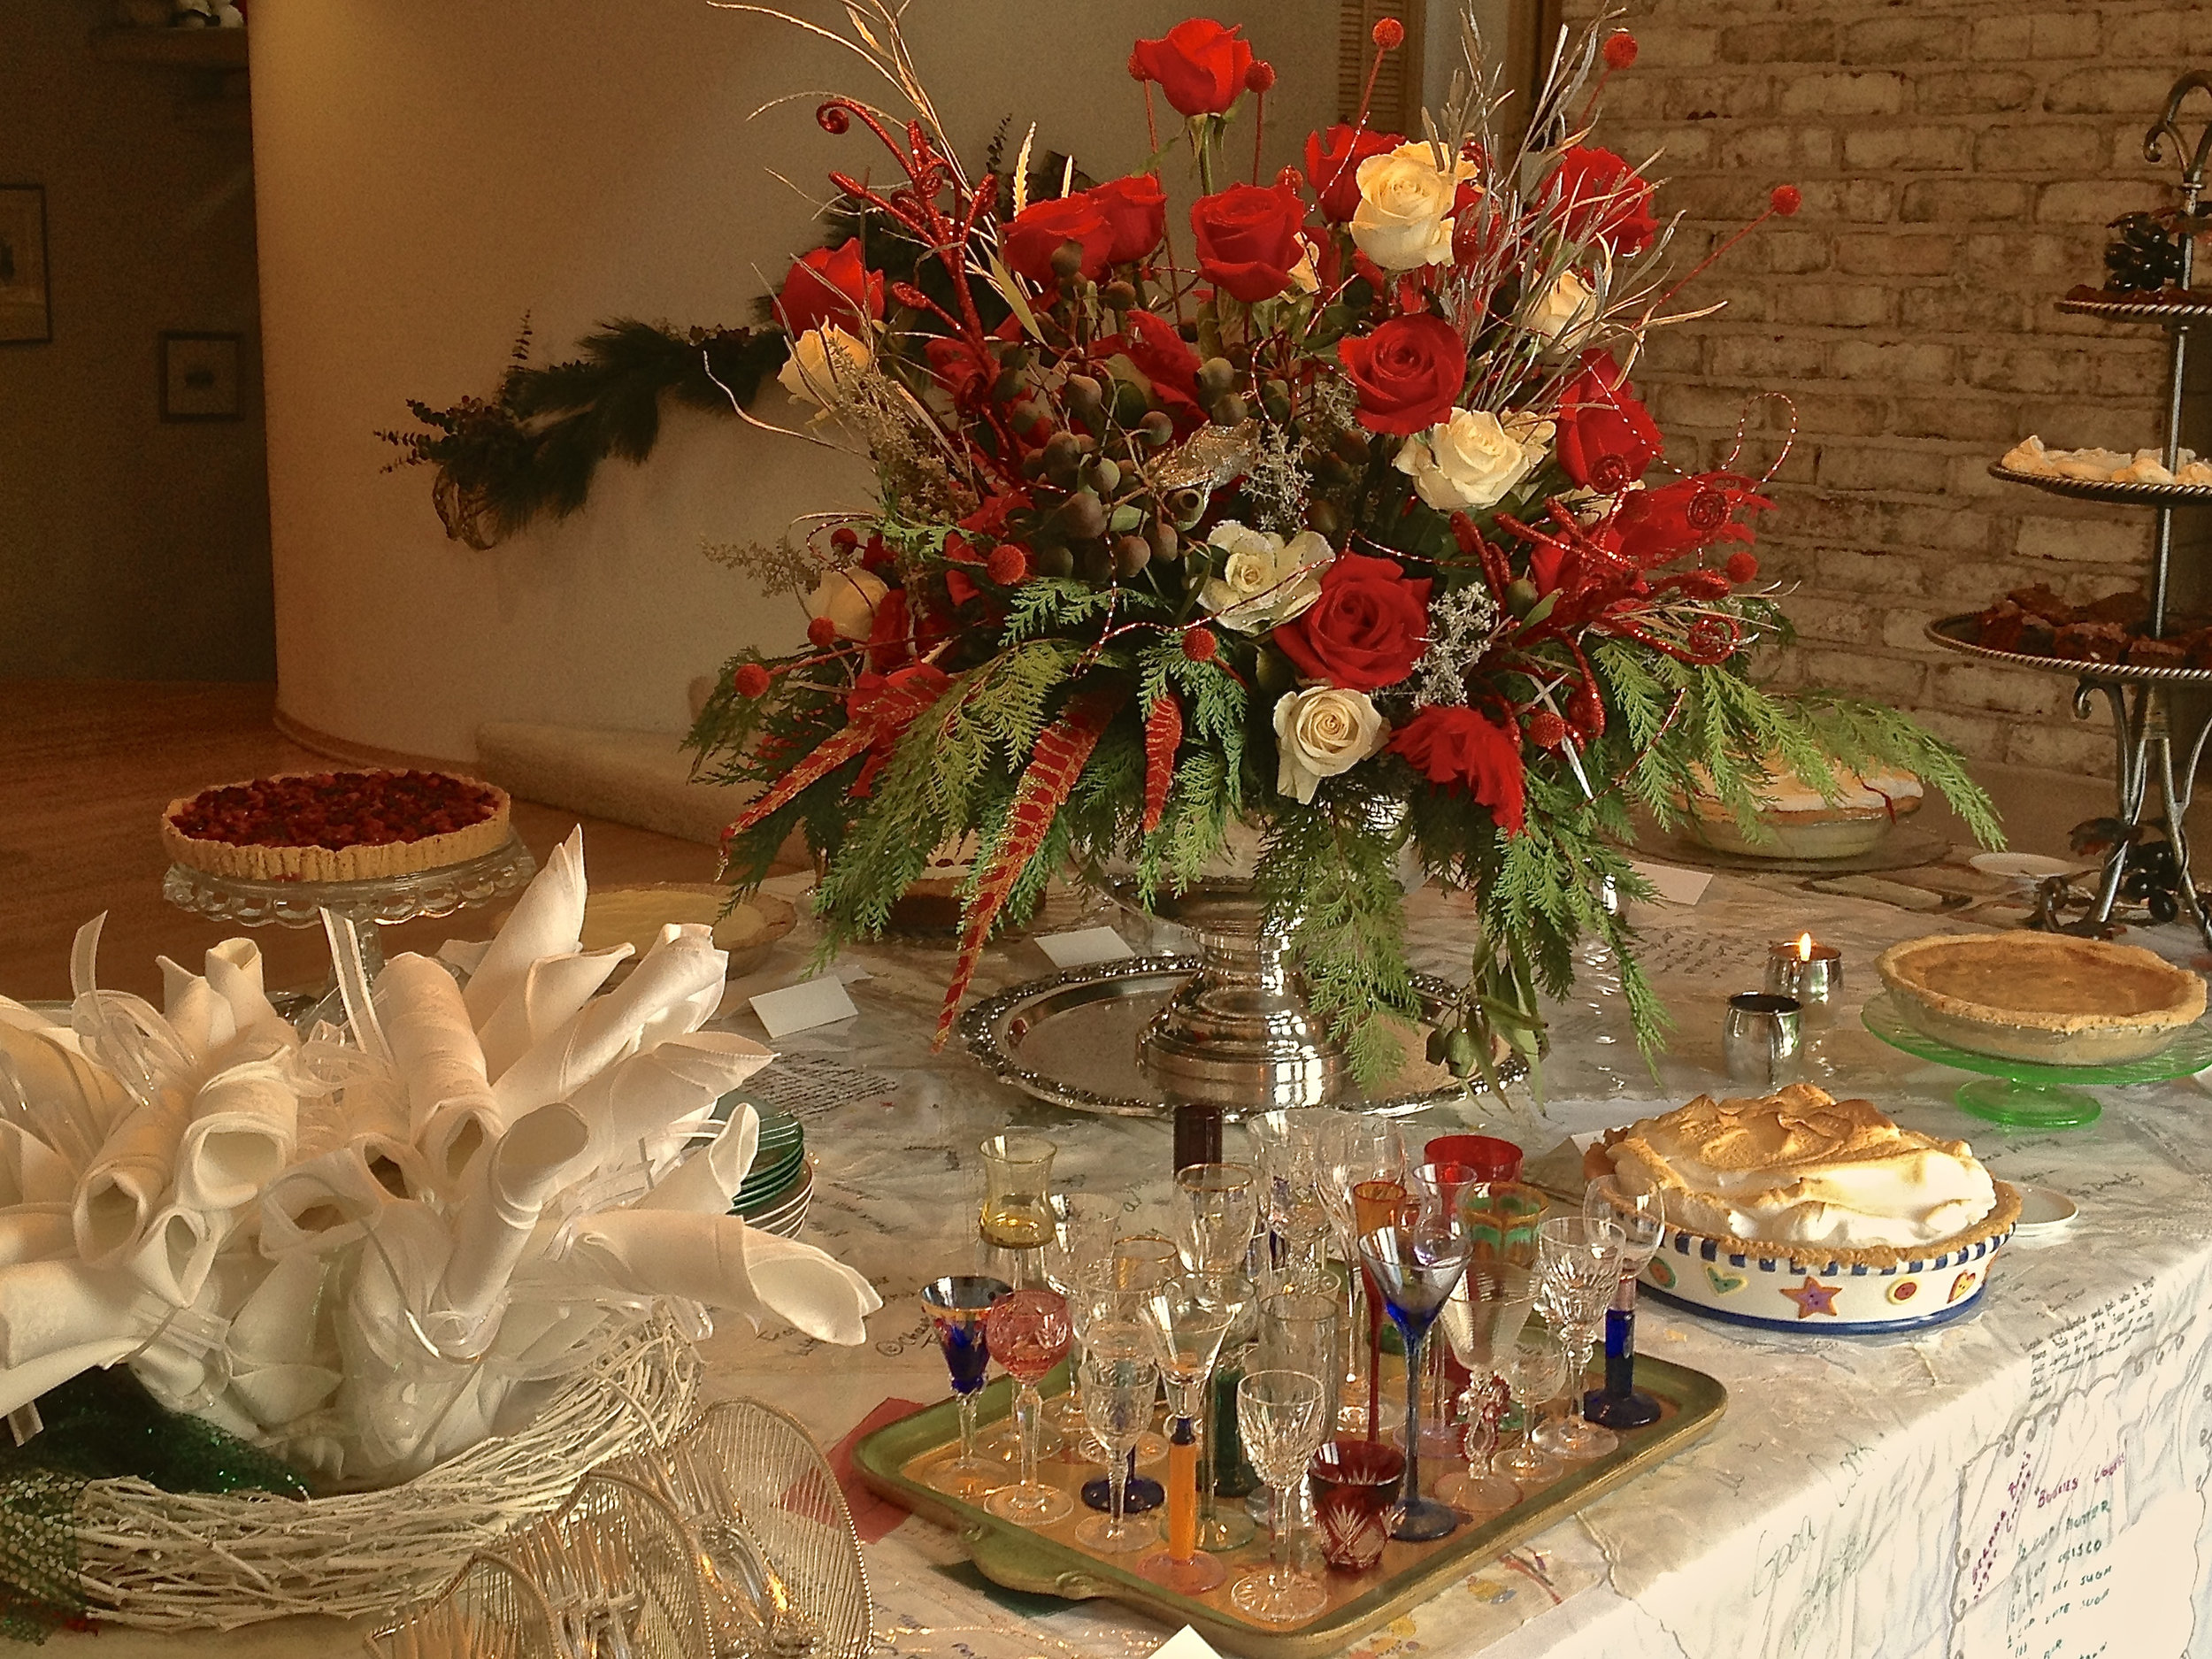 cindi_dessertparty_2014_spiritedtable_photo1.jpg